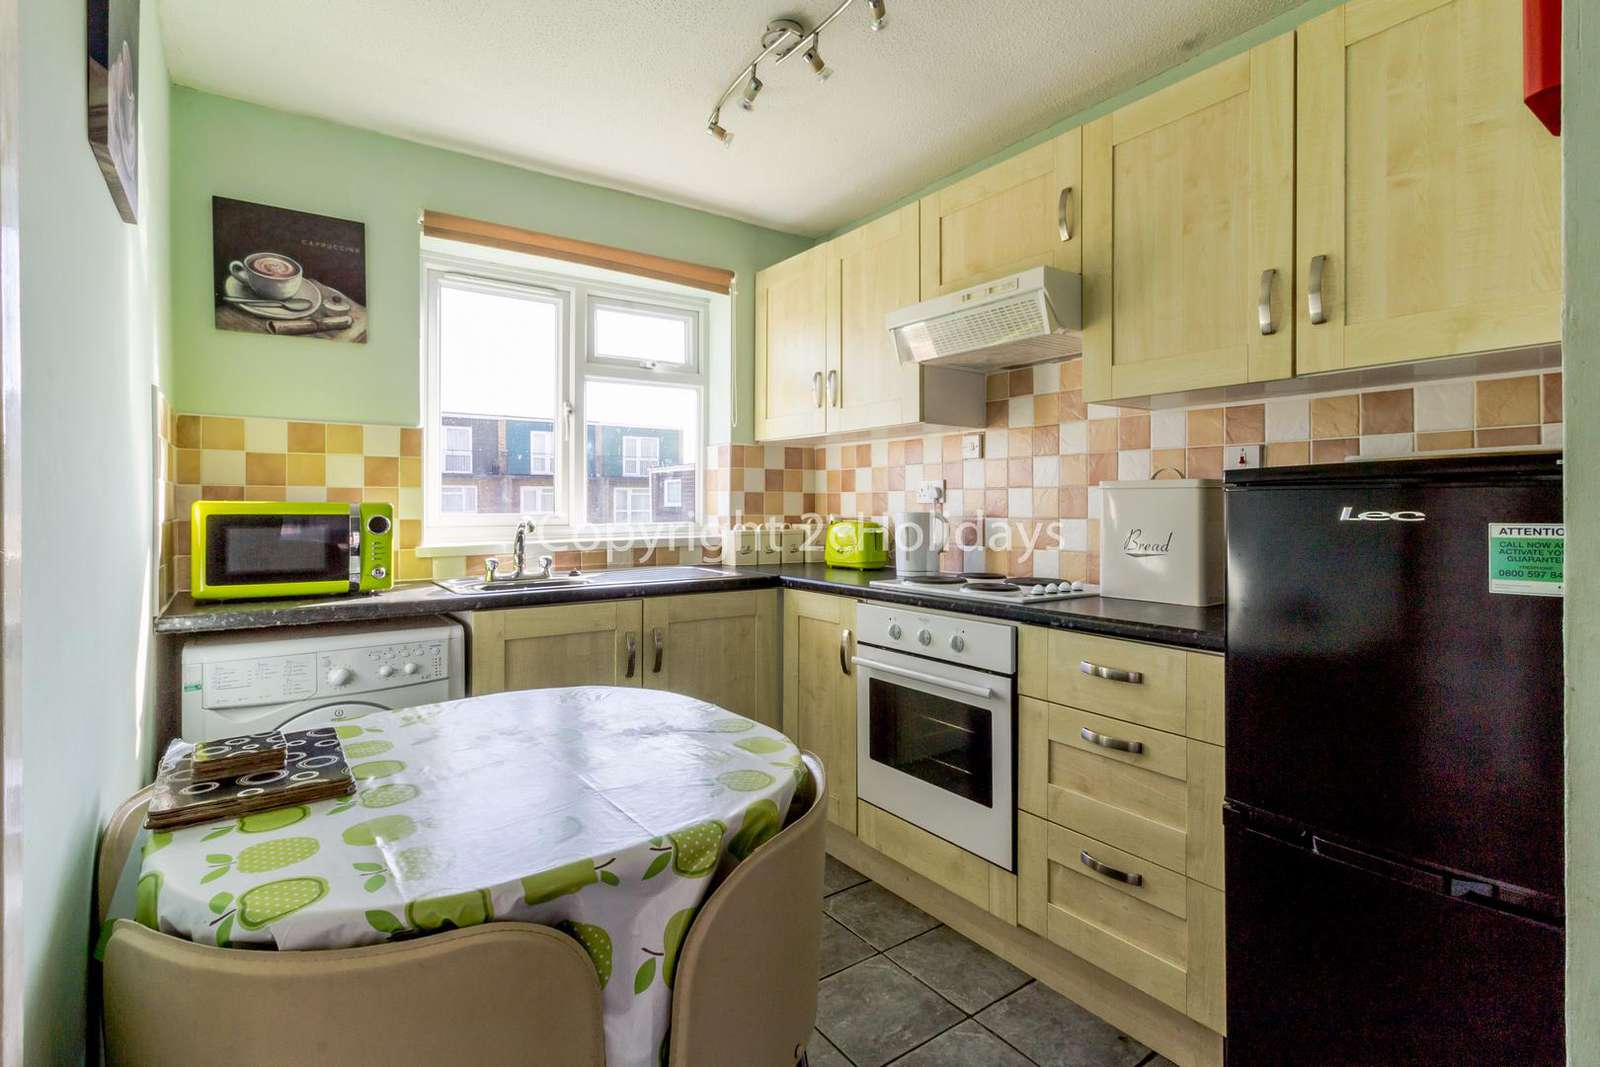 Kitchen is perfected for self catering breaks with a full size cooker!